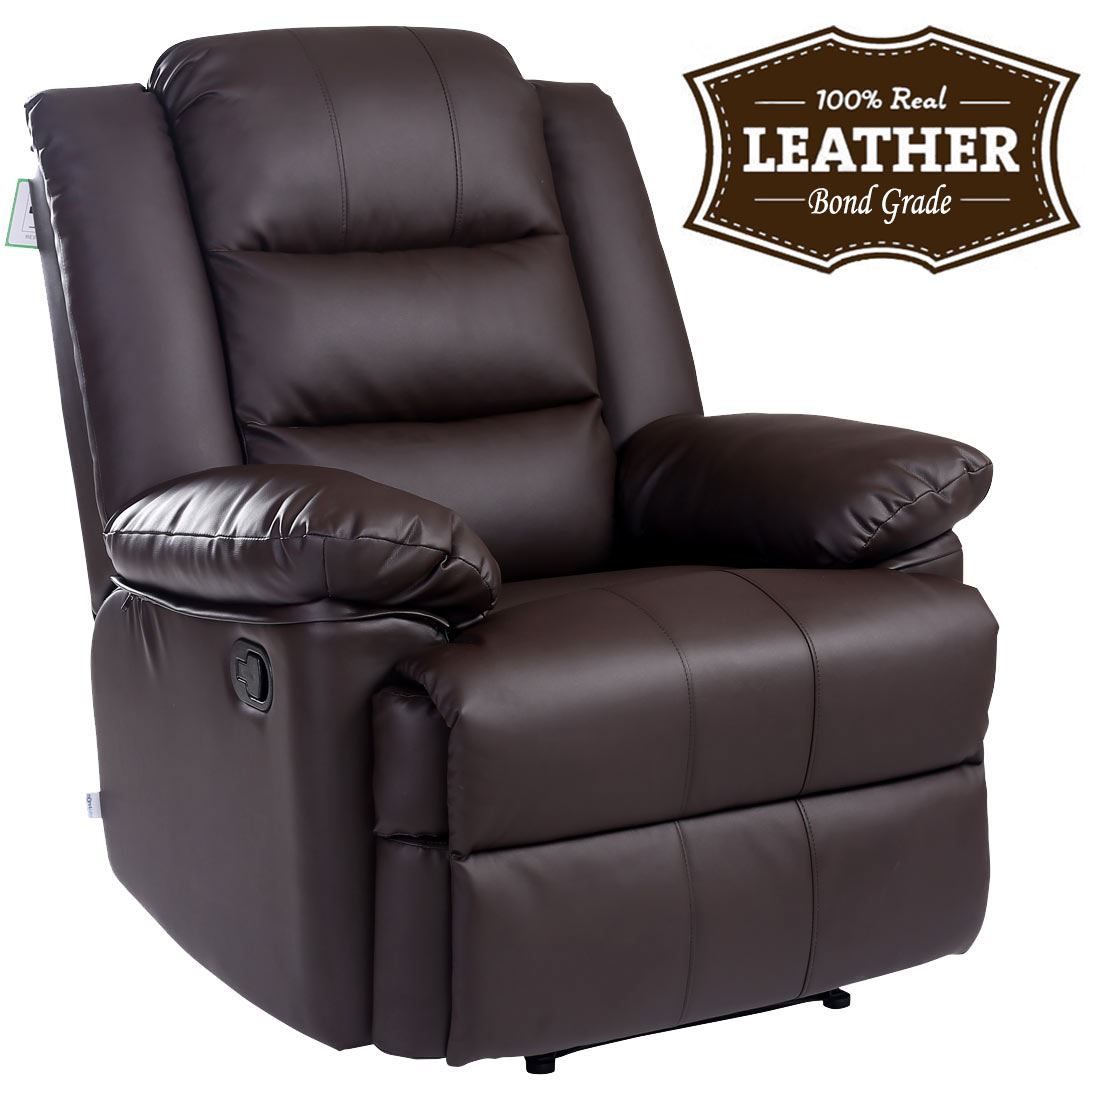 grove product shipping leather recliner chestnut hoffman free today overstock copper home bonded garden